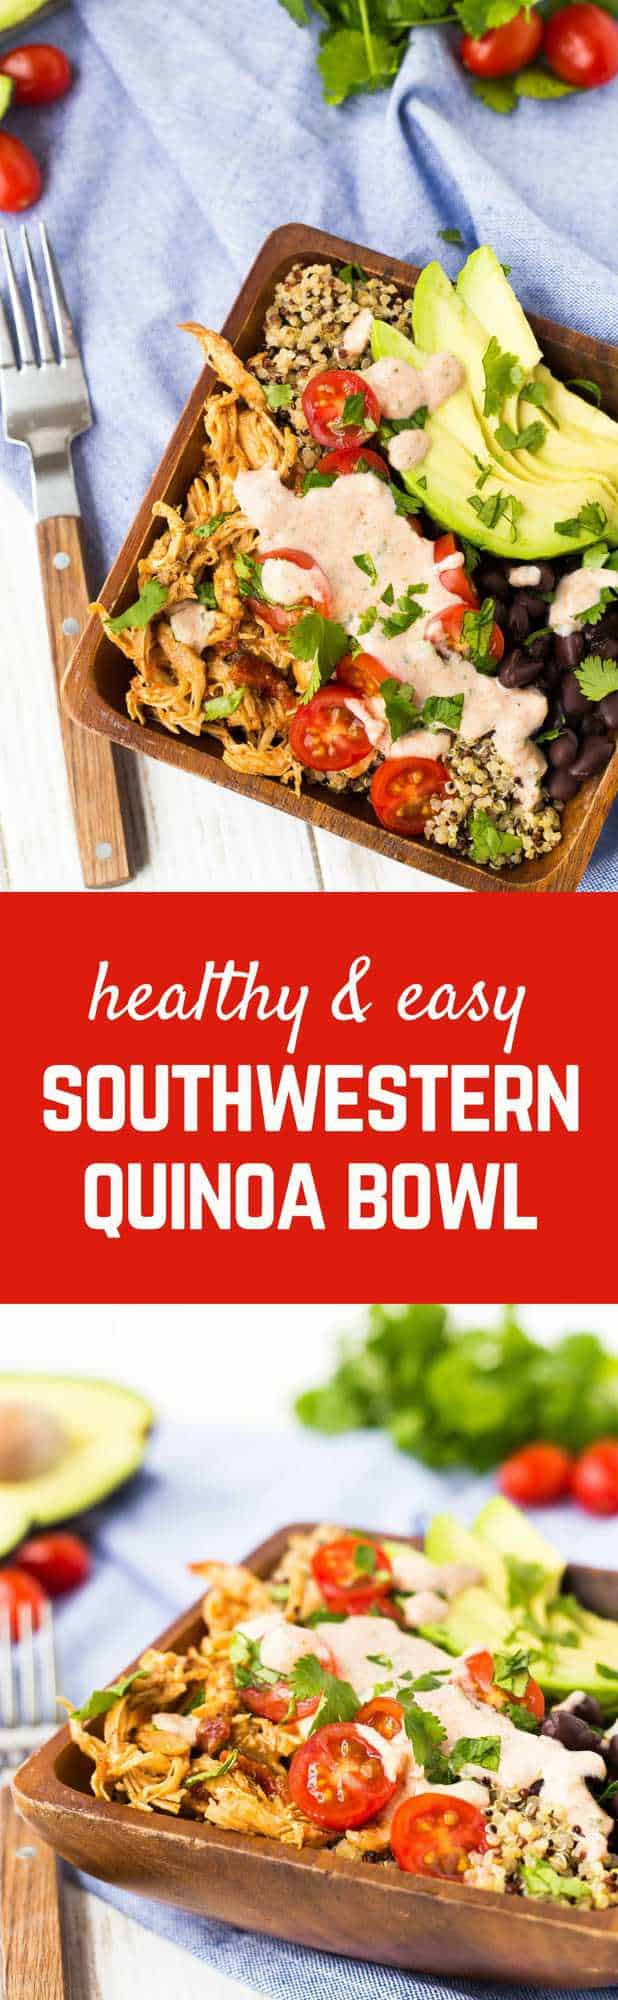 Chicken and black beans make this Southwestern Quinoa Bowl an incredibly filling and healthy lunch or dinner. It's ideal if you do meal prepping! Get the easy recipe on RachelCooks.com!